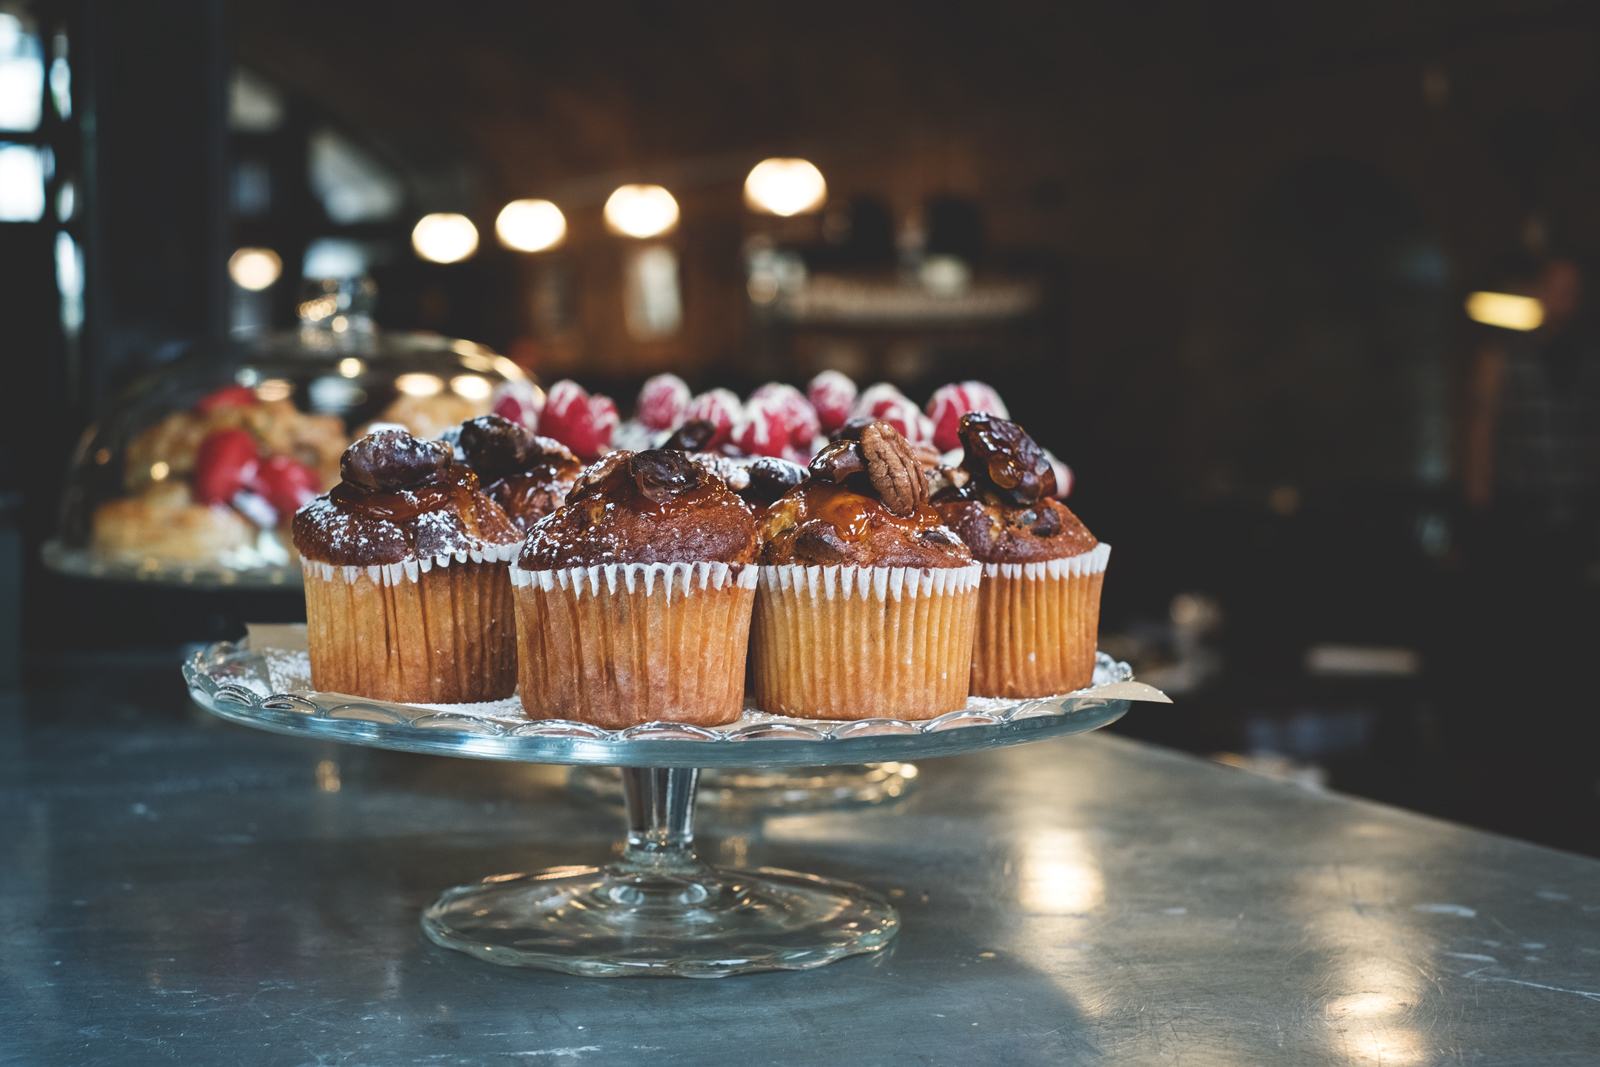 Motorcycles and Muffins - The Bike Shed